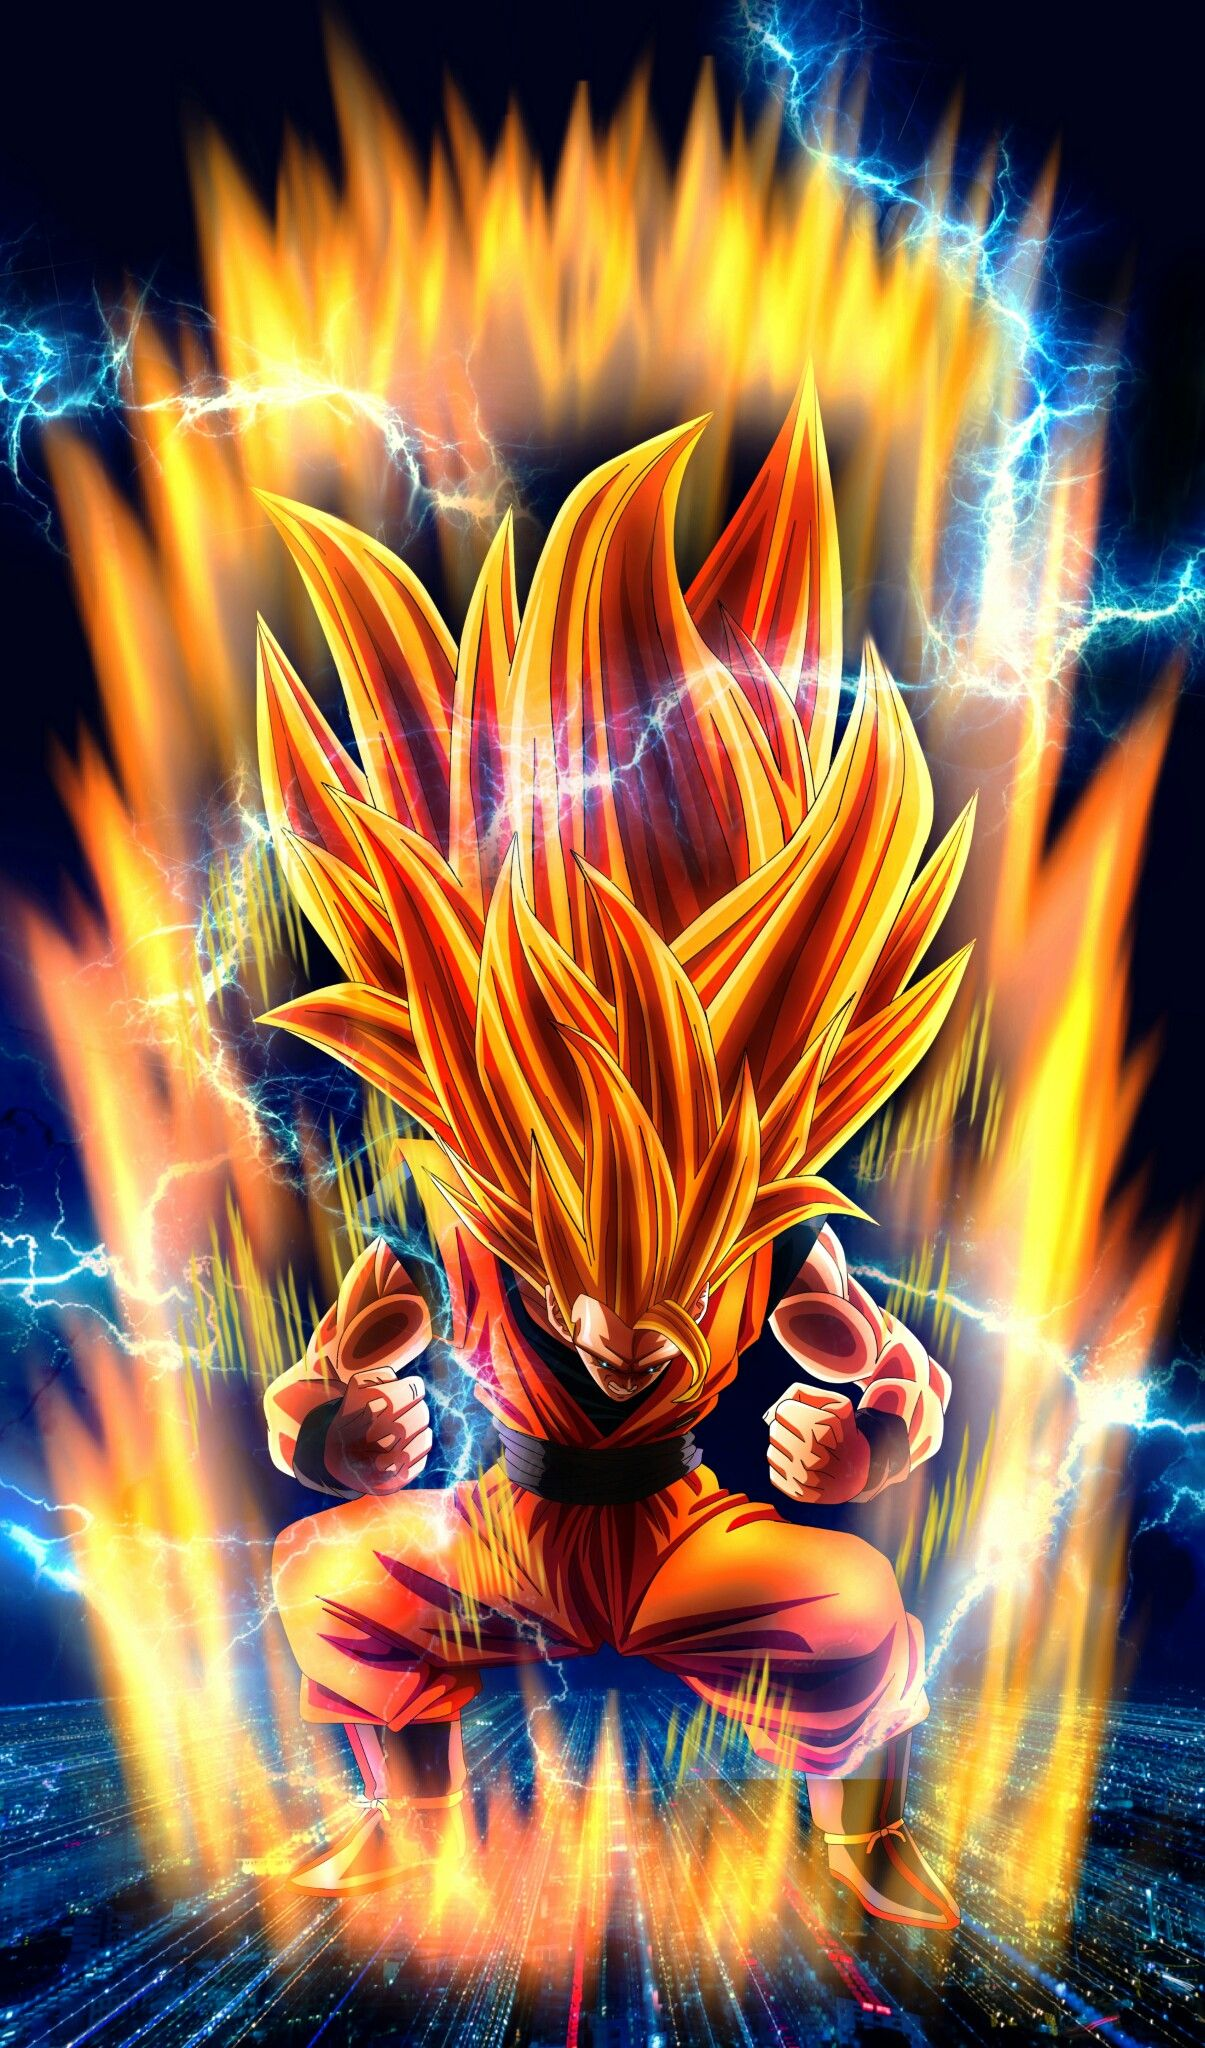 Goku Super Sayajin 3 Dragon Ball Wallpapers Anime Dragon Ball